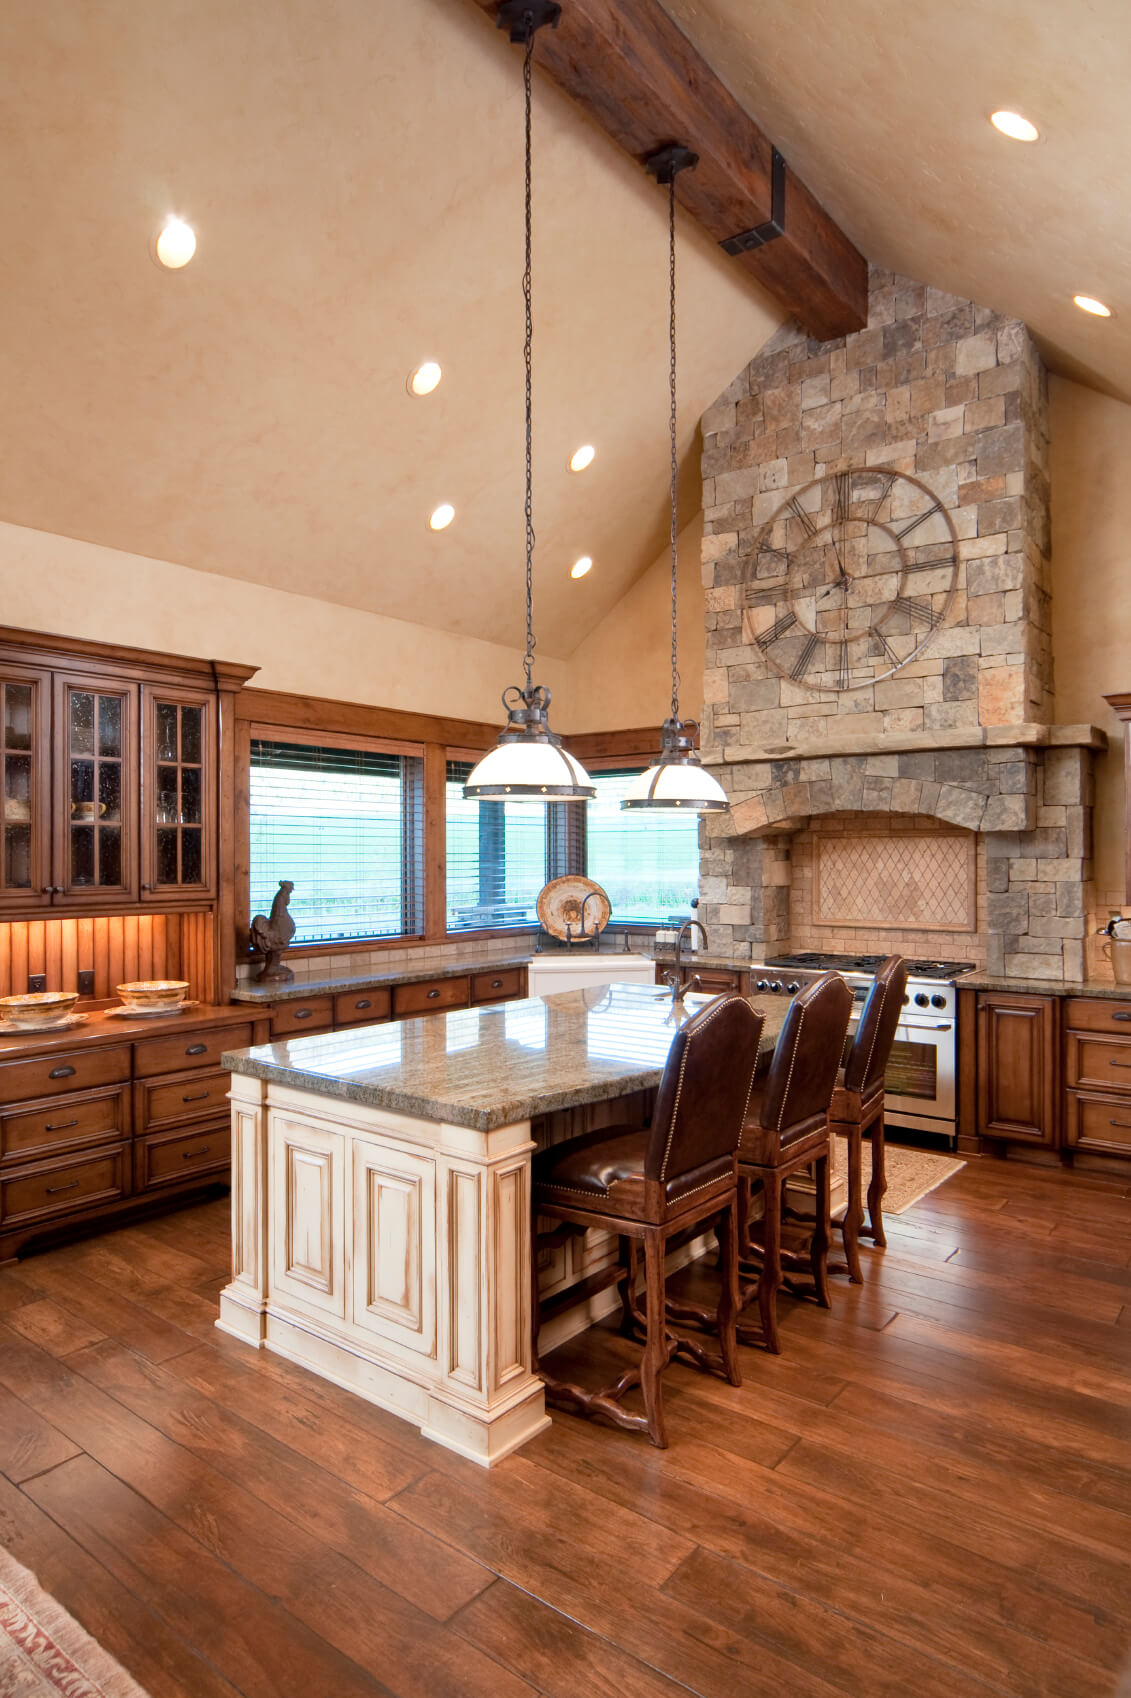 Dream Kitchen Design 48 luxury dream kitchen designs worth every penny (photos)